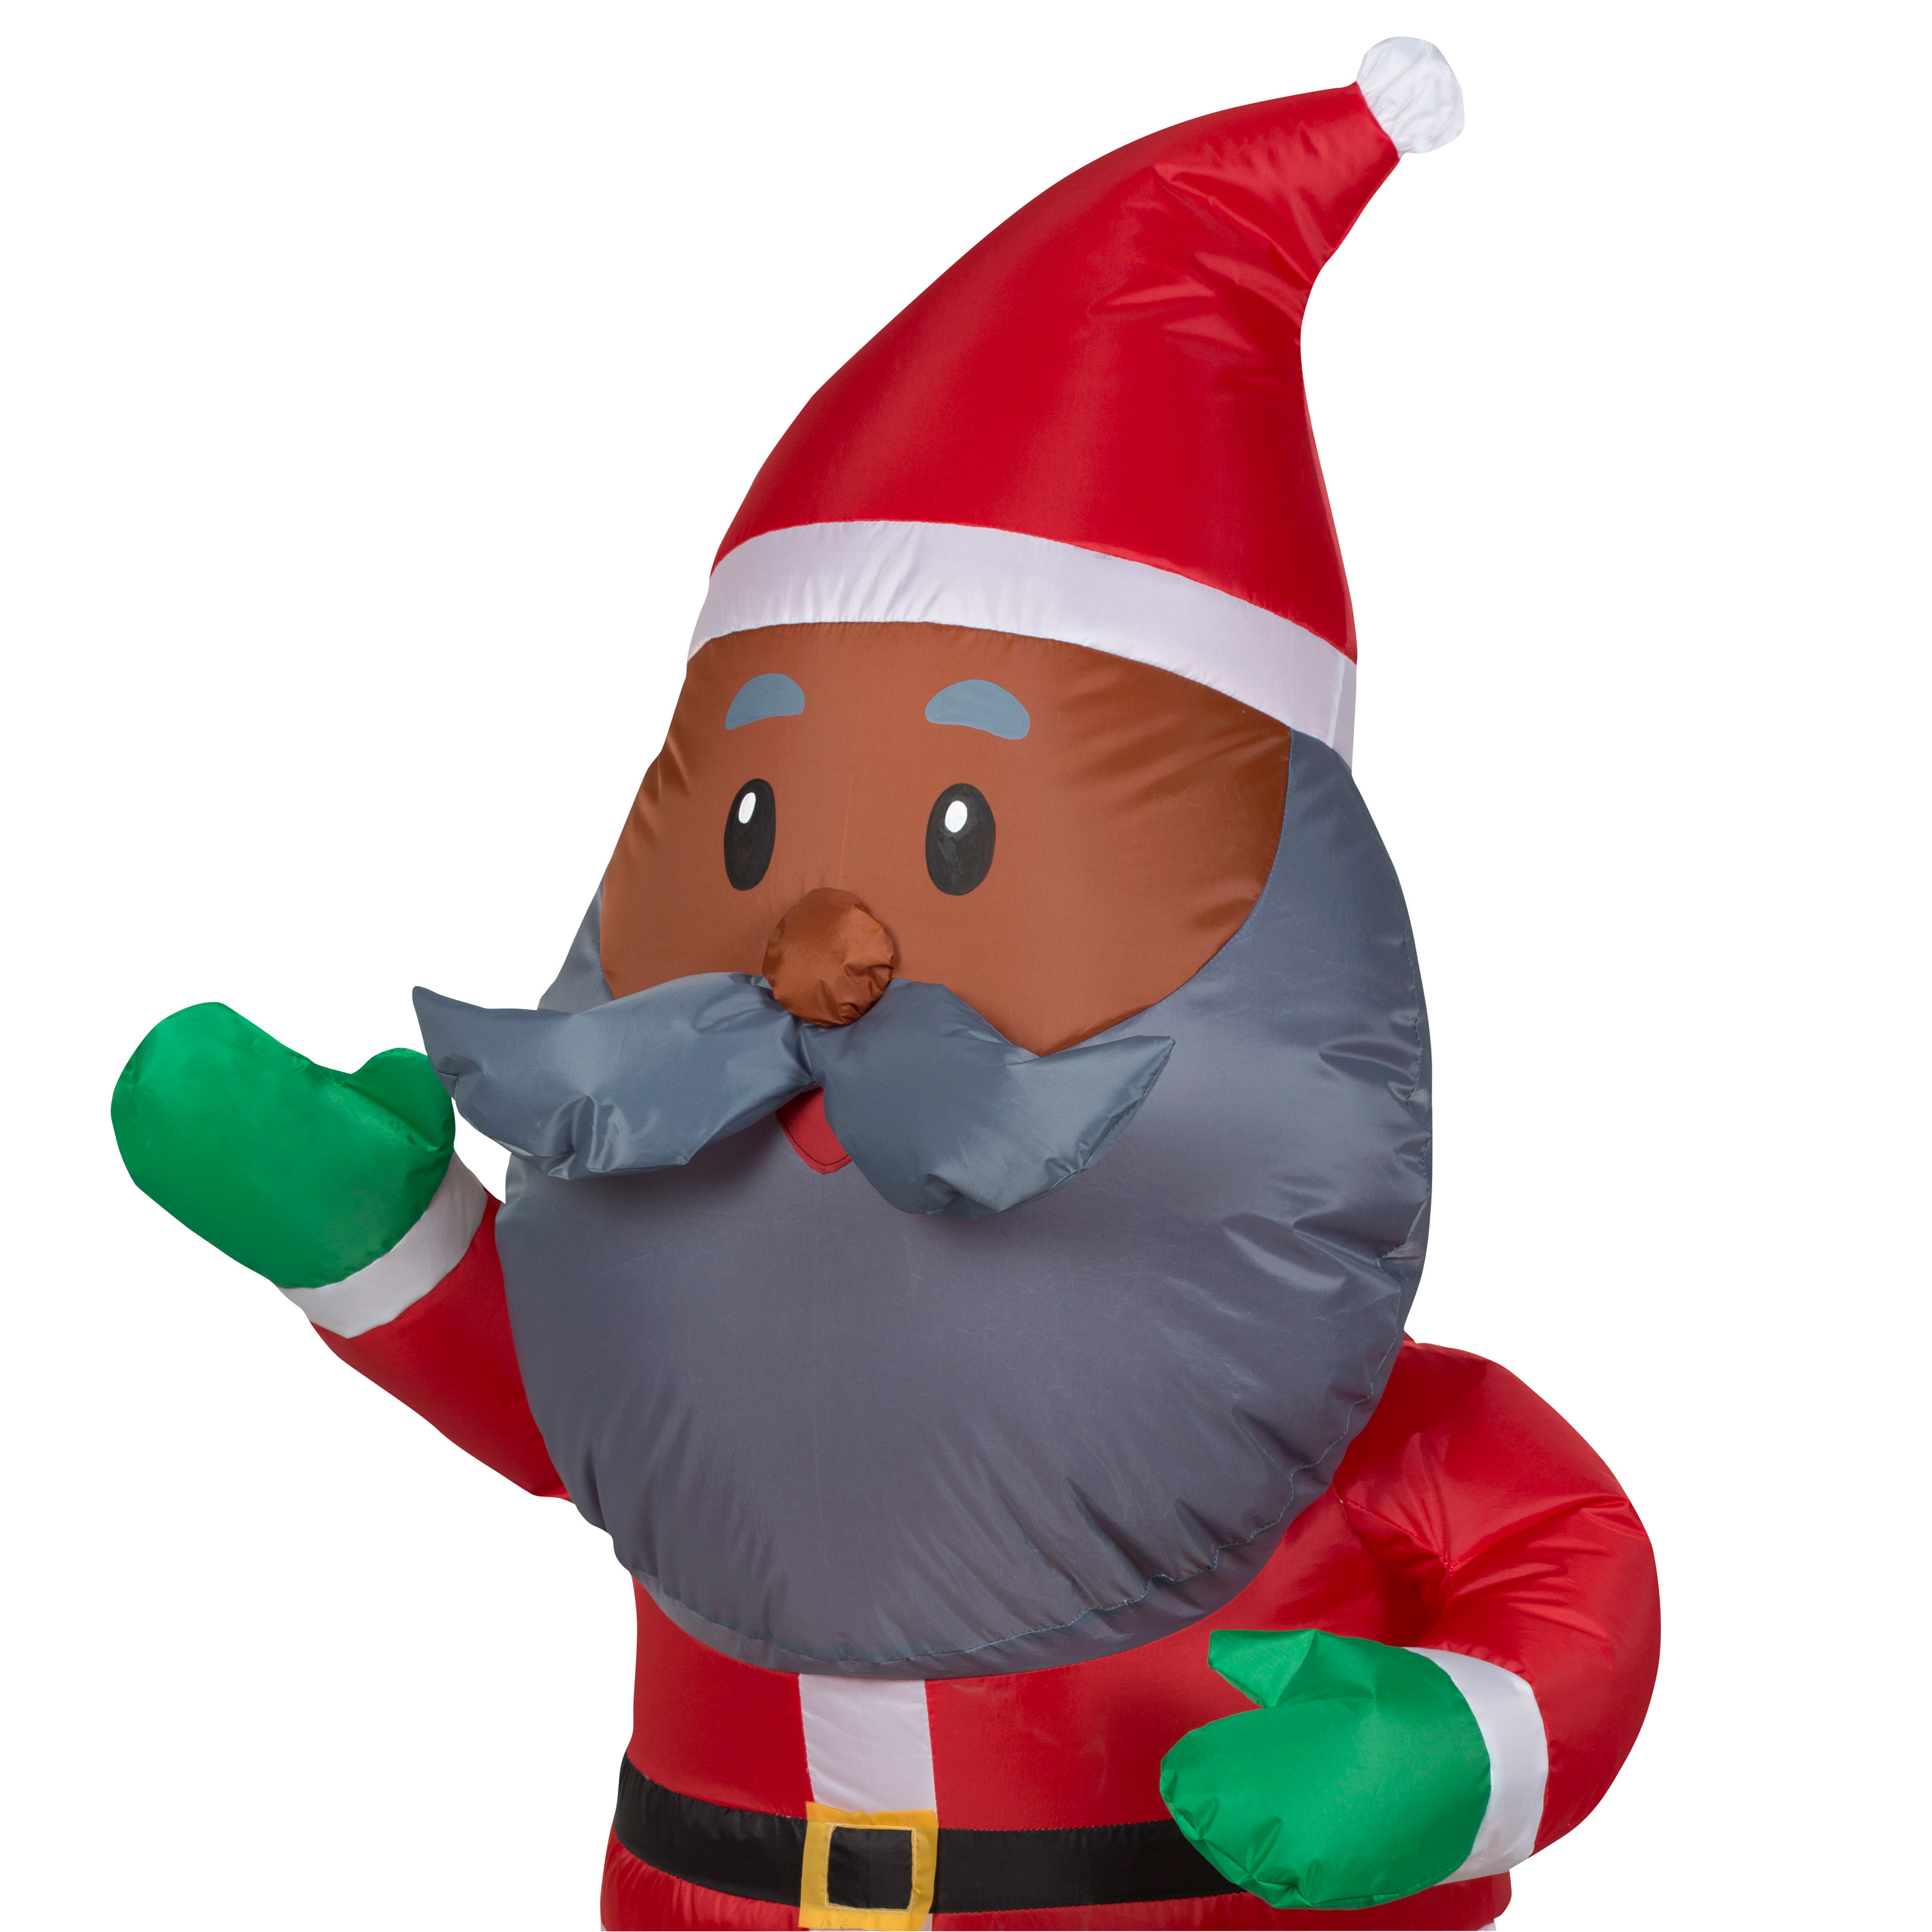 Image of Airblown Inflatable African American Santa 4ft tall by Gemmy Industries